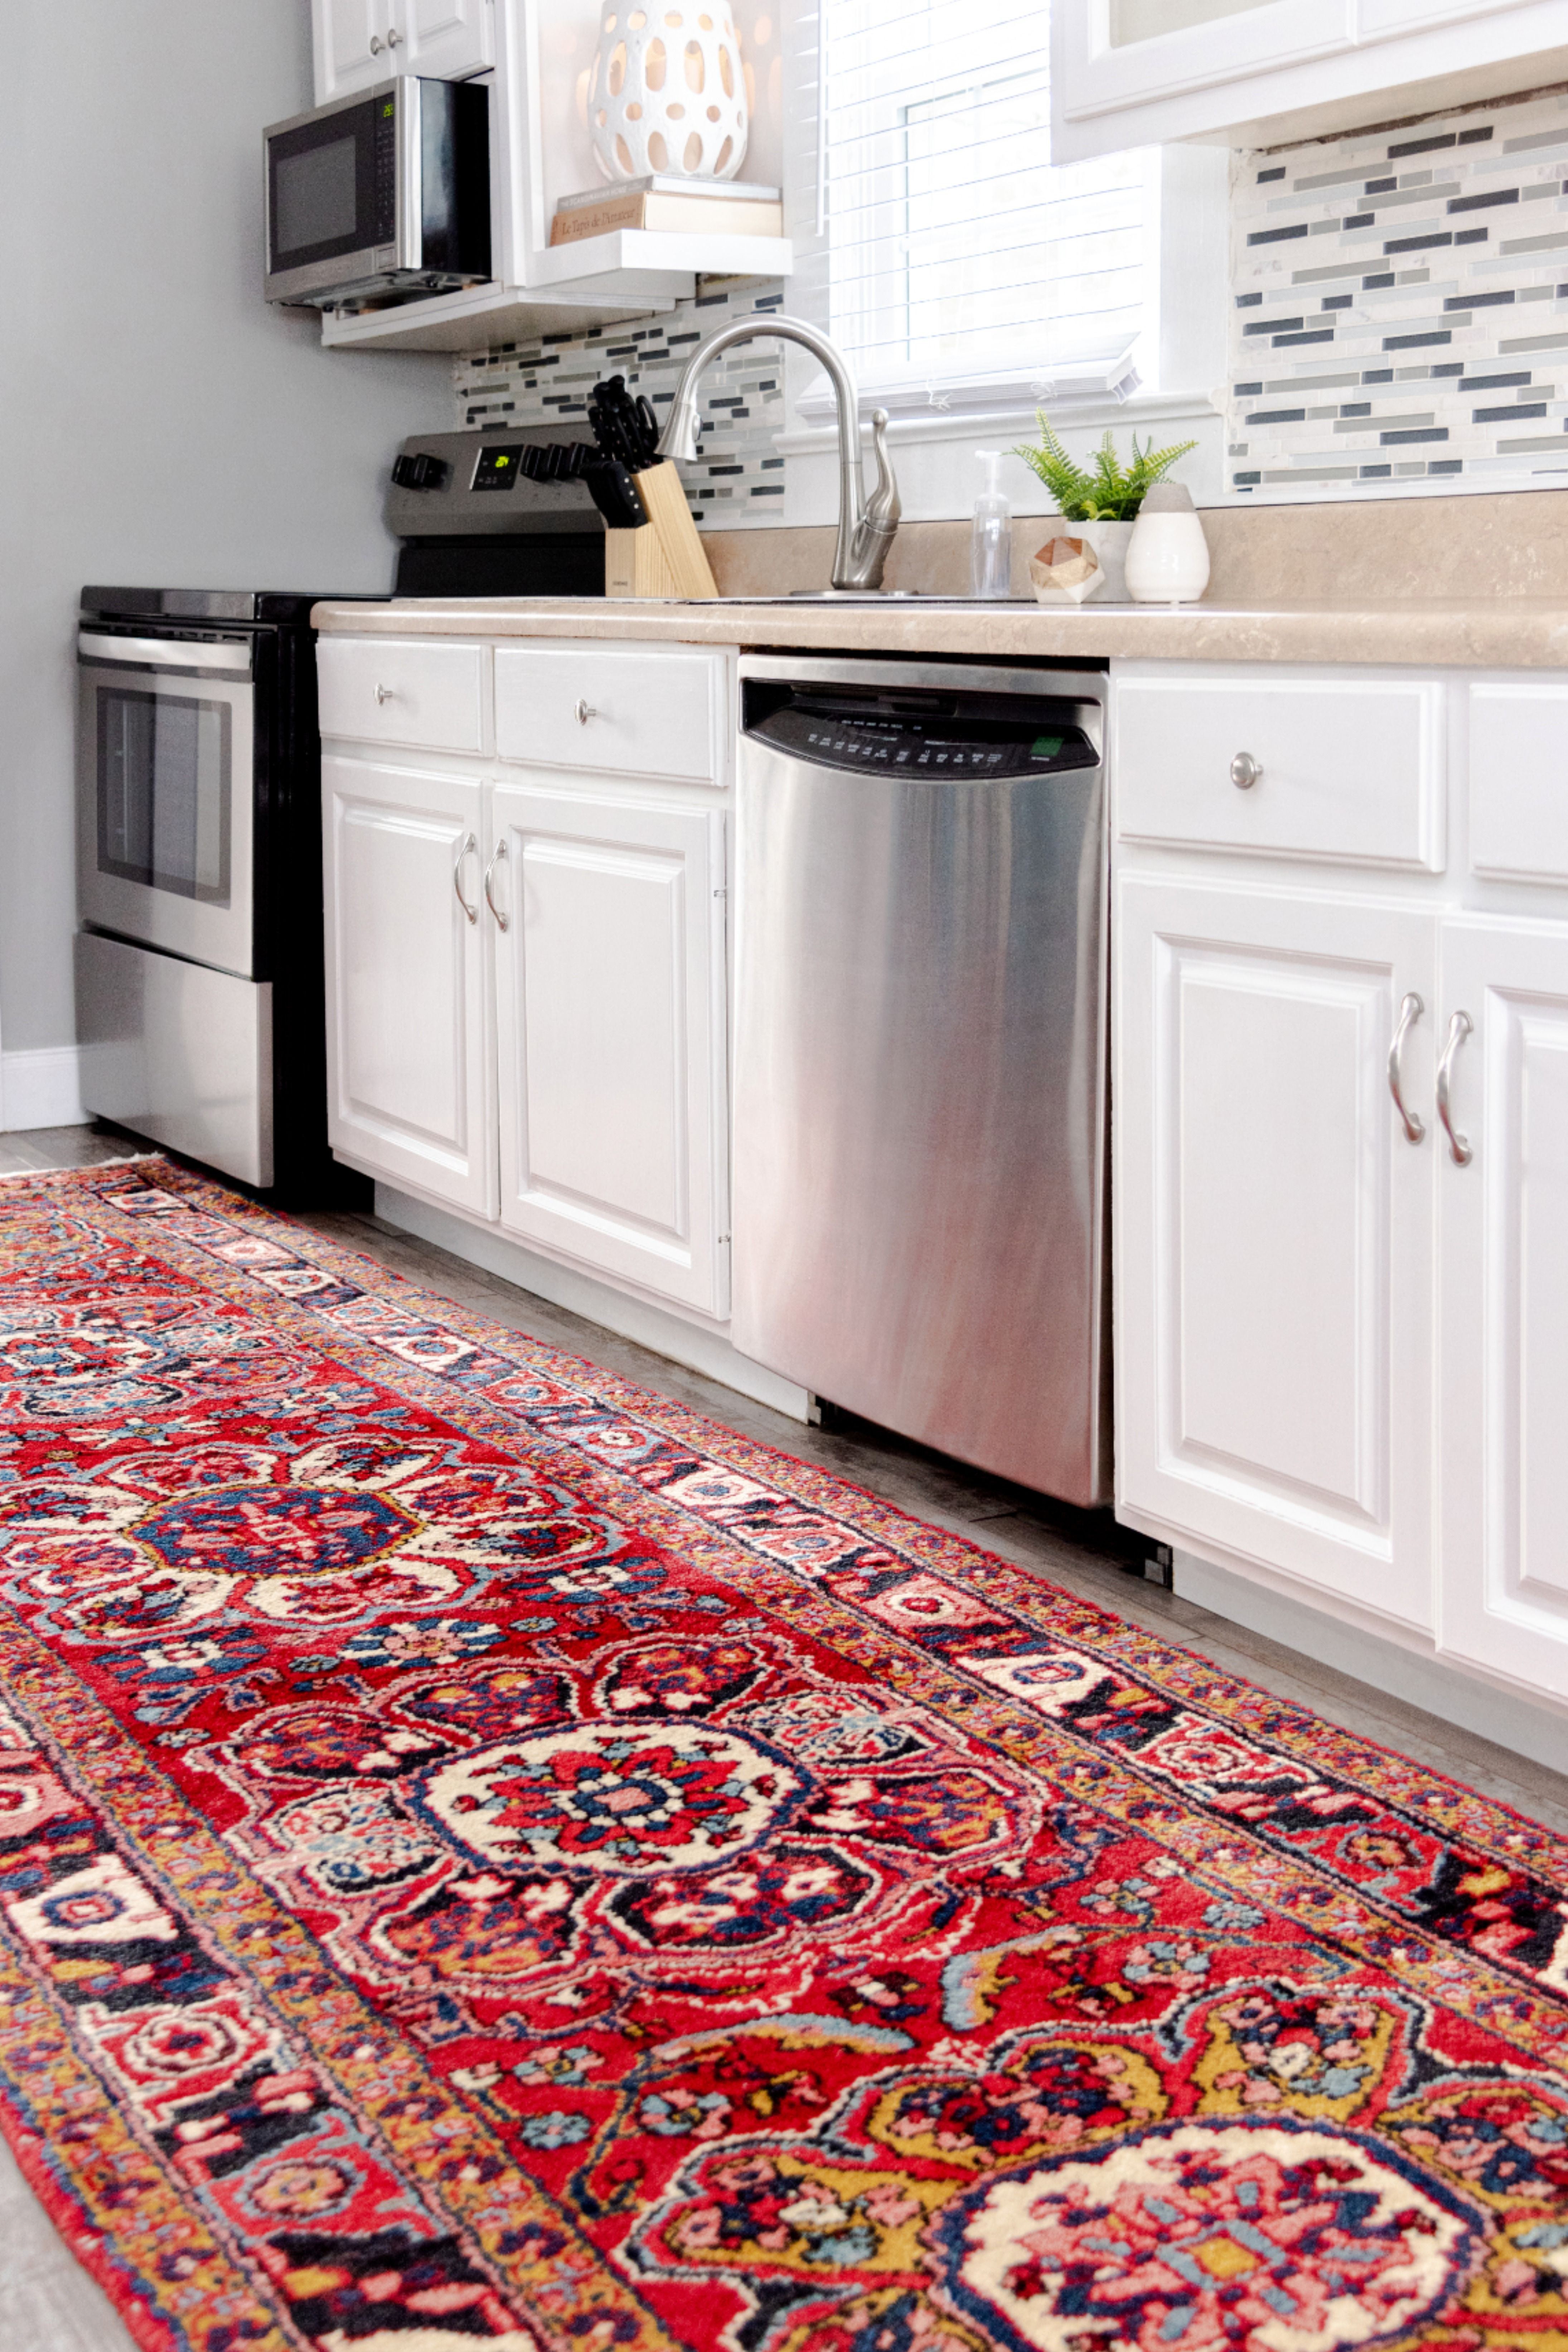 Persian Rugs In The Kitchen In 2020 Persian Rug Kitchen Persian Rug Living Room Red Persian Rug Living Room #red #persian #rug #living #room